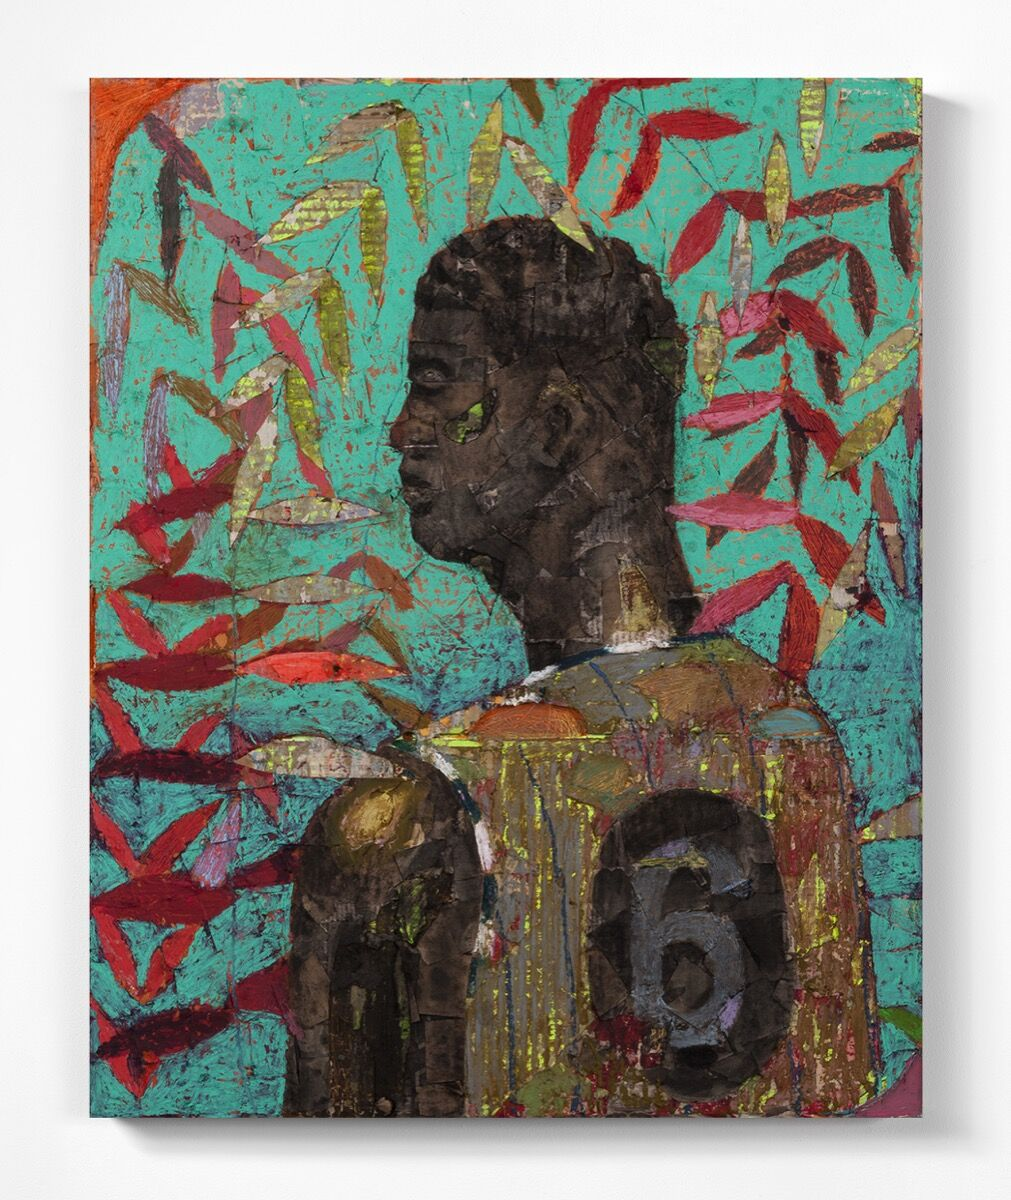 Derek Fordjour, No. 73, 2017. Courtesy the artist and Luce Gallery. Courtesy of Dallas Art Fair.